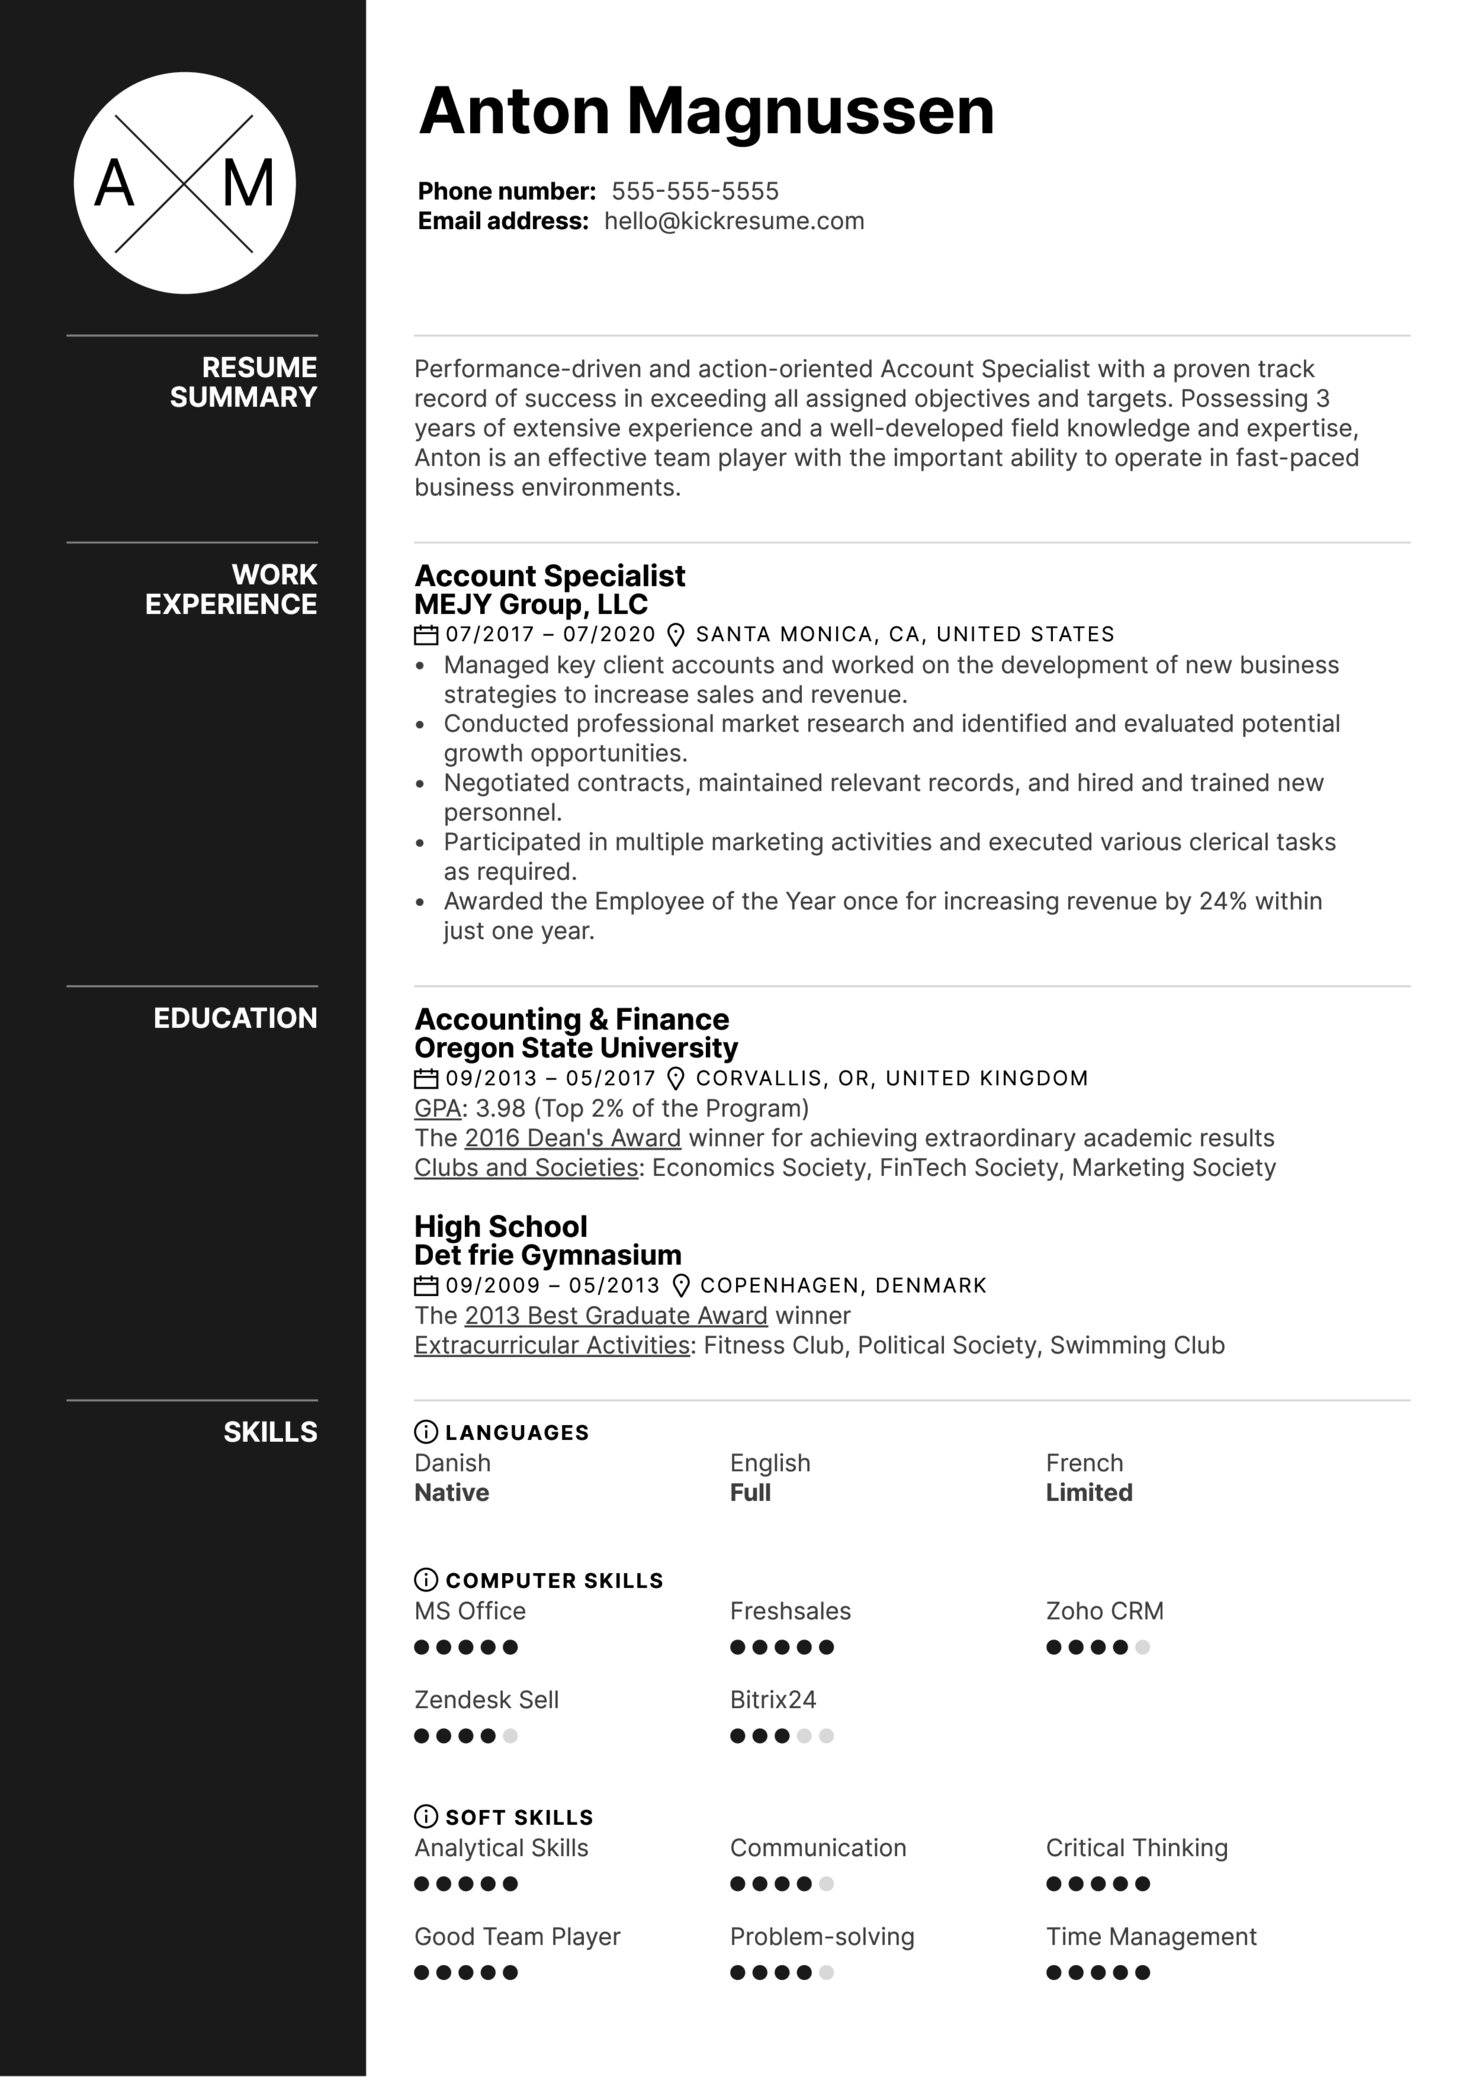 Account Specialist Resume Example (Part 1)